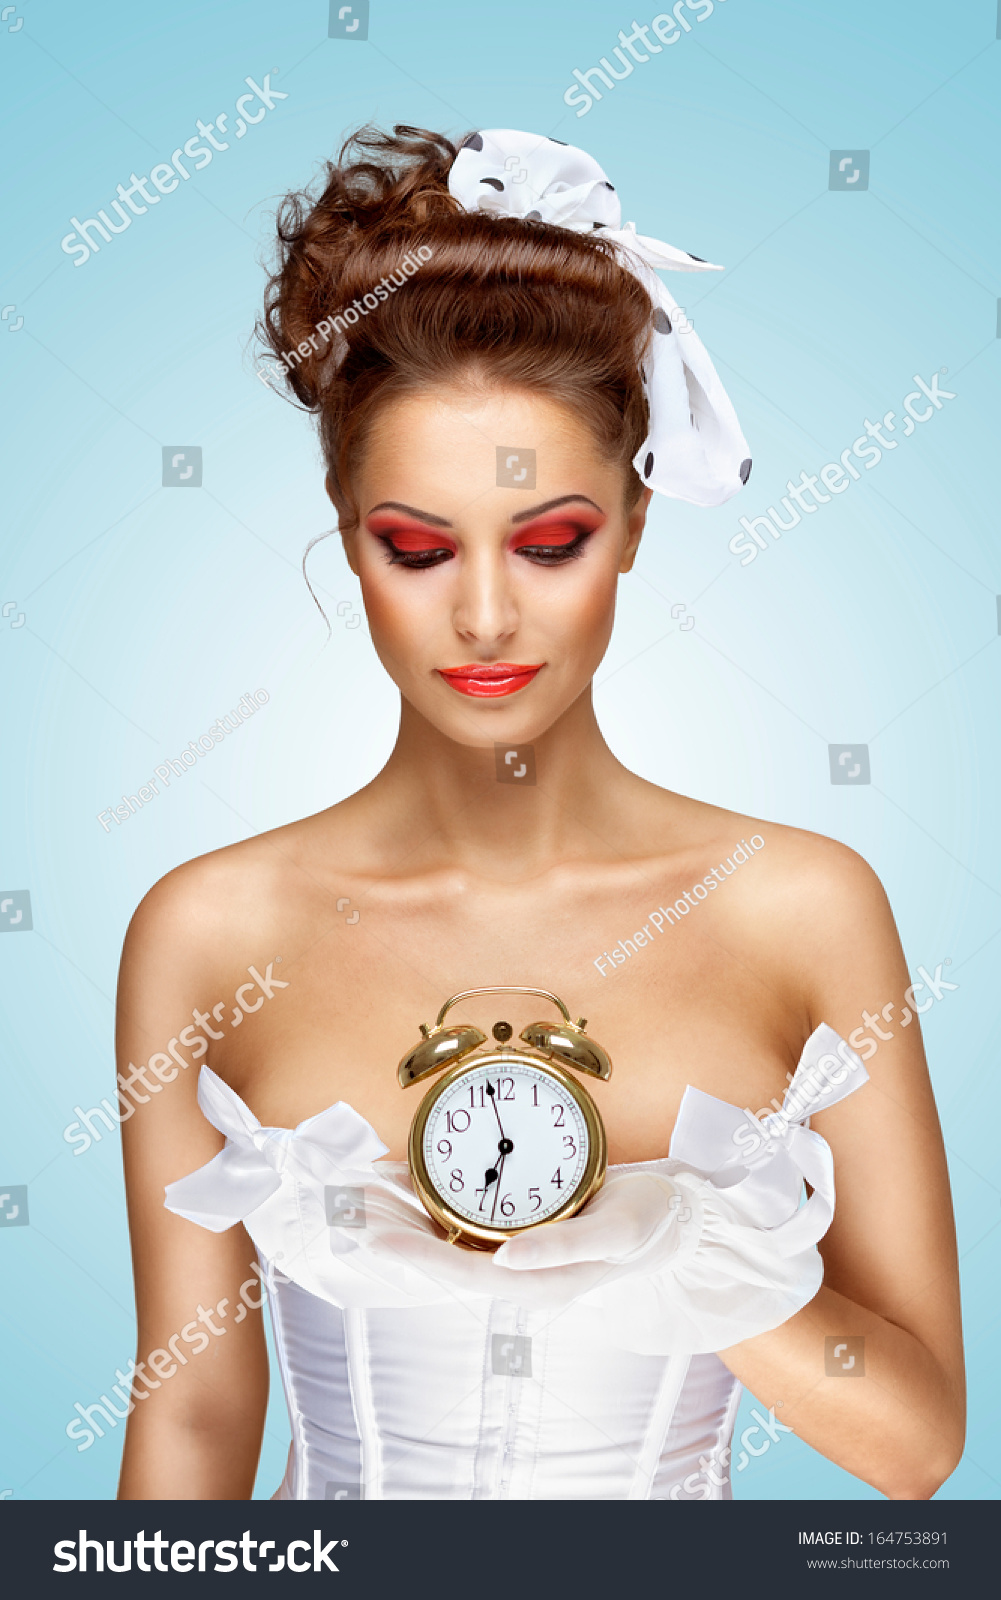 2fa5cf007 A beautiful vintage pin-up girl in a white wedding dress being late in the  morning and holding a retro alarm clock in her hand.